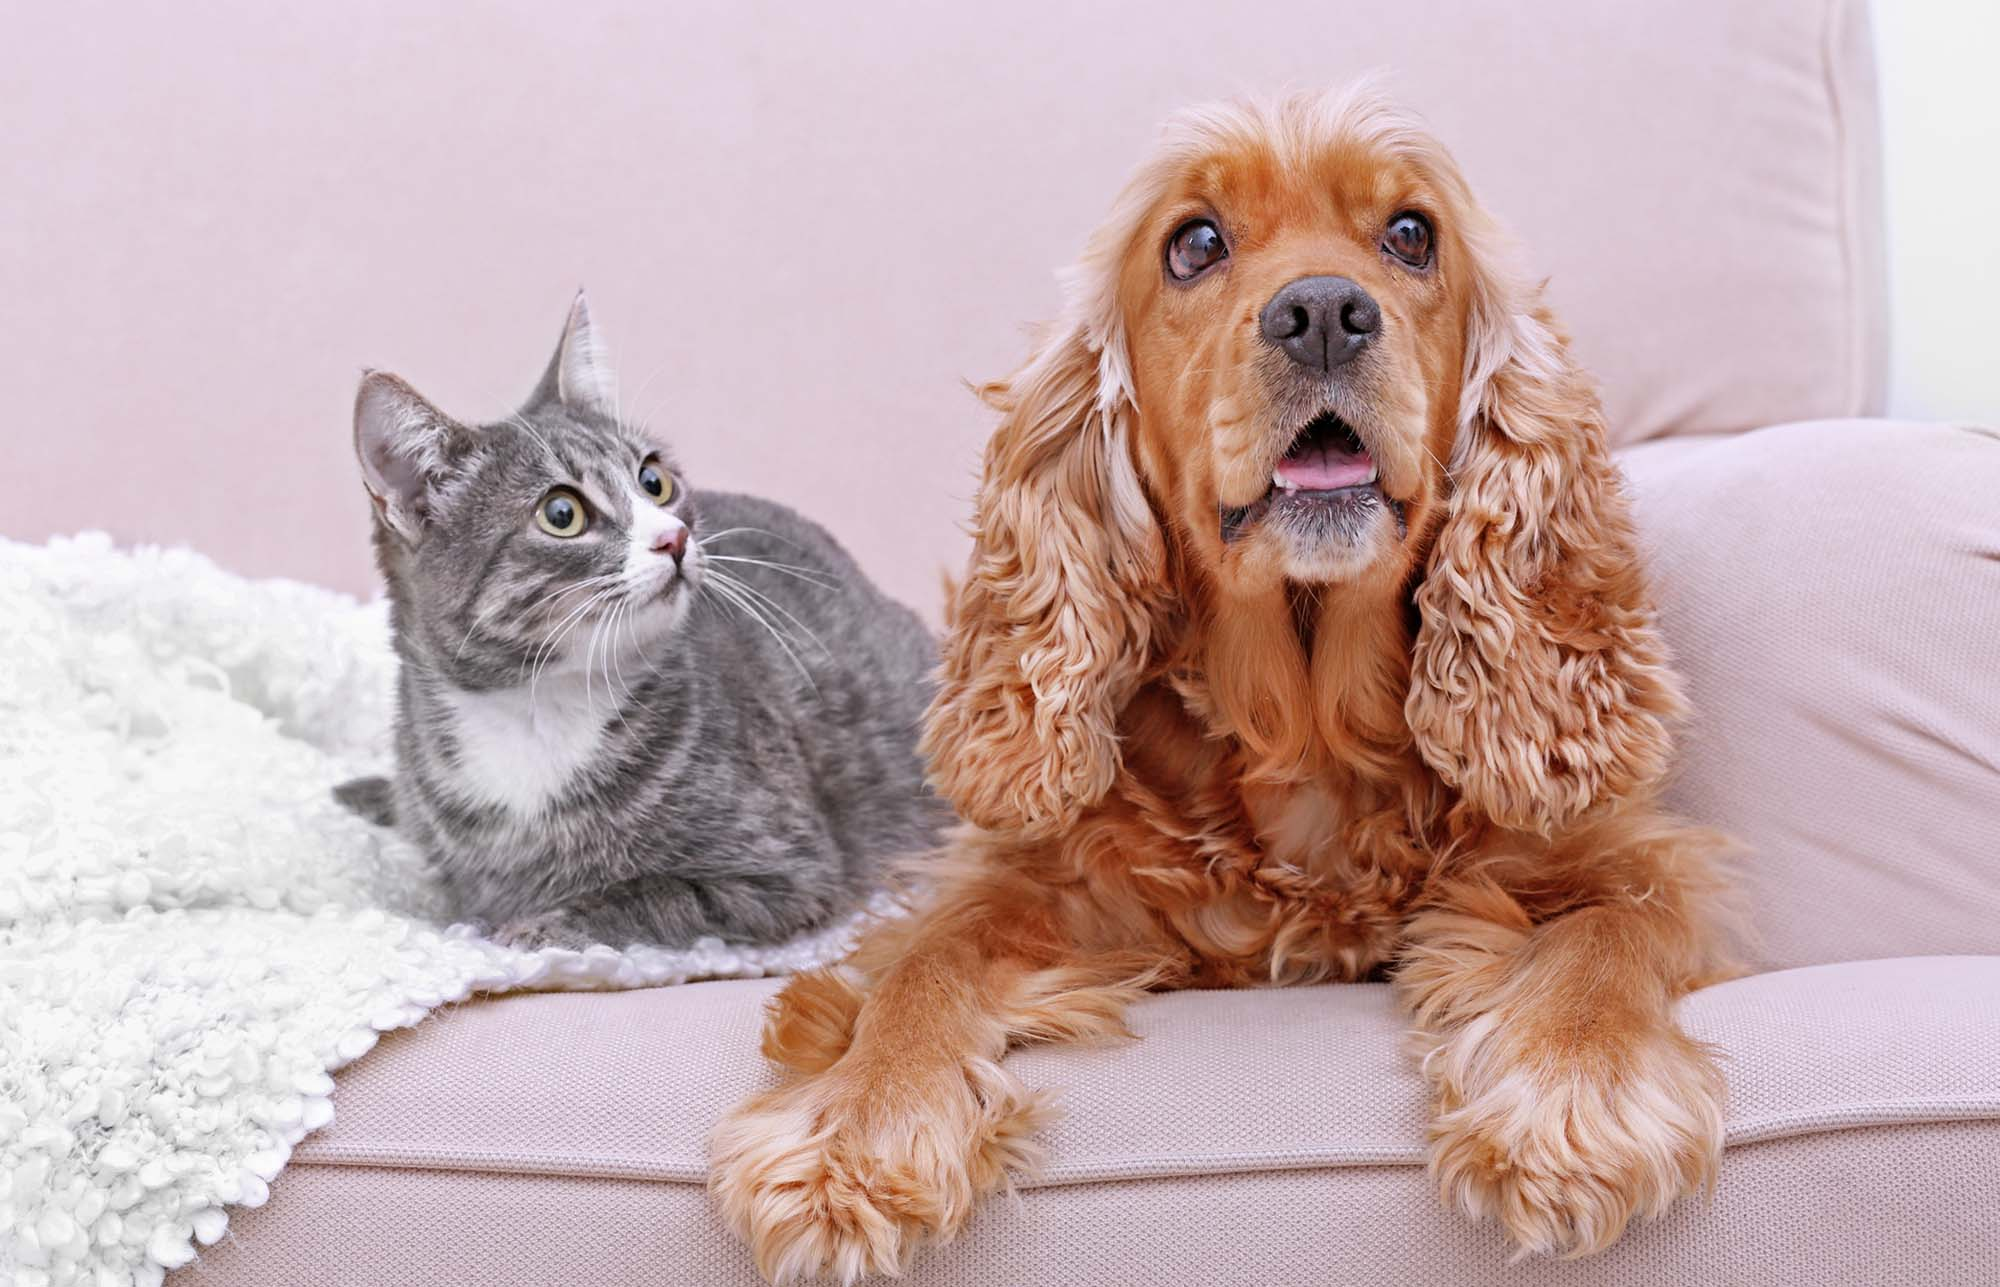 Pet Sitter in Woking Cute dog and cat together on couch at home